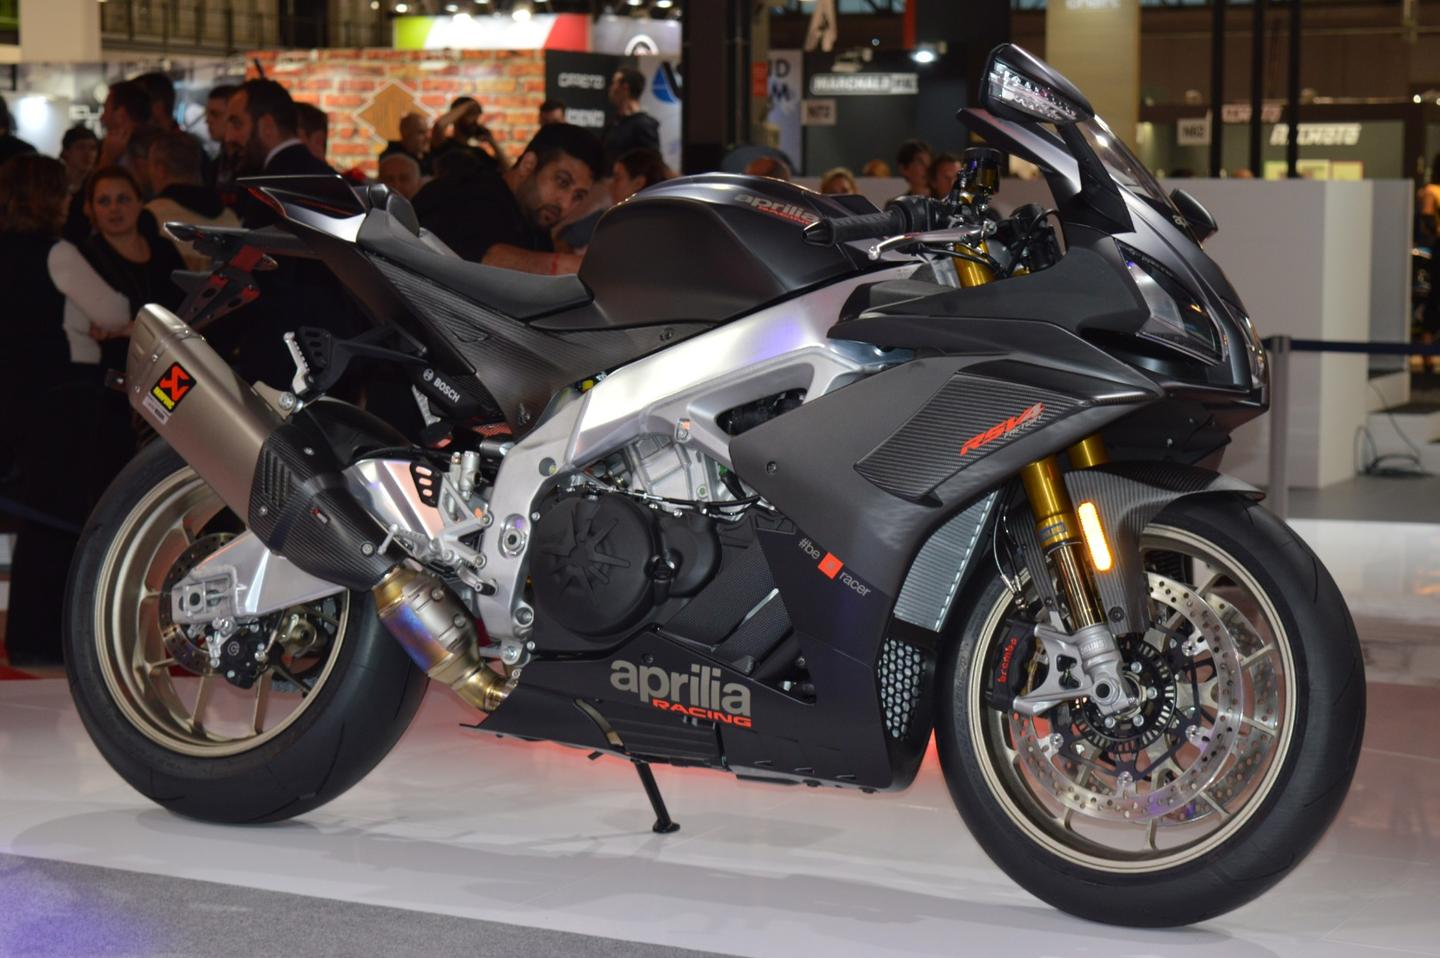 In pictures: All the action from EICMA 2018 motorcycle show